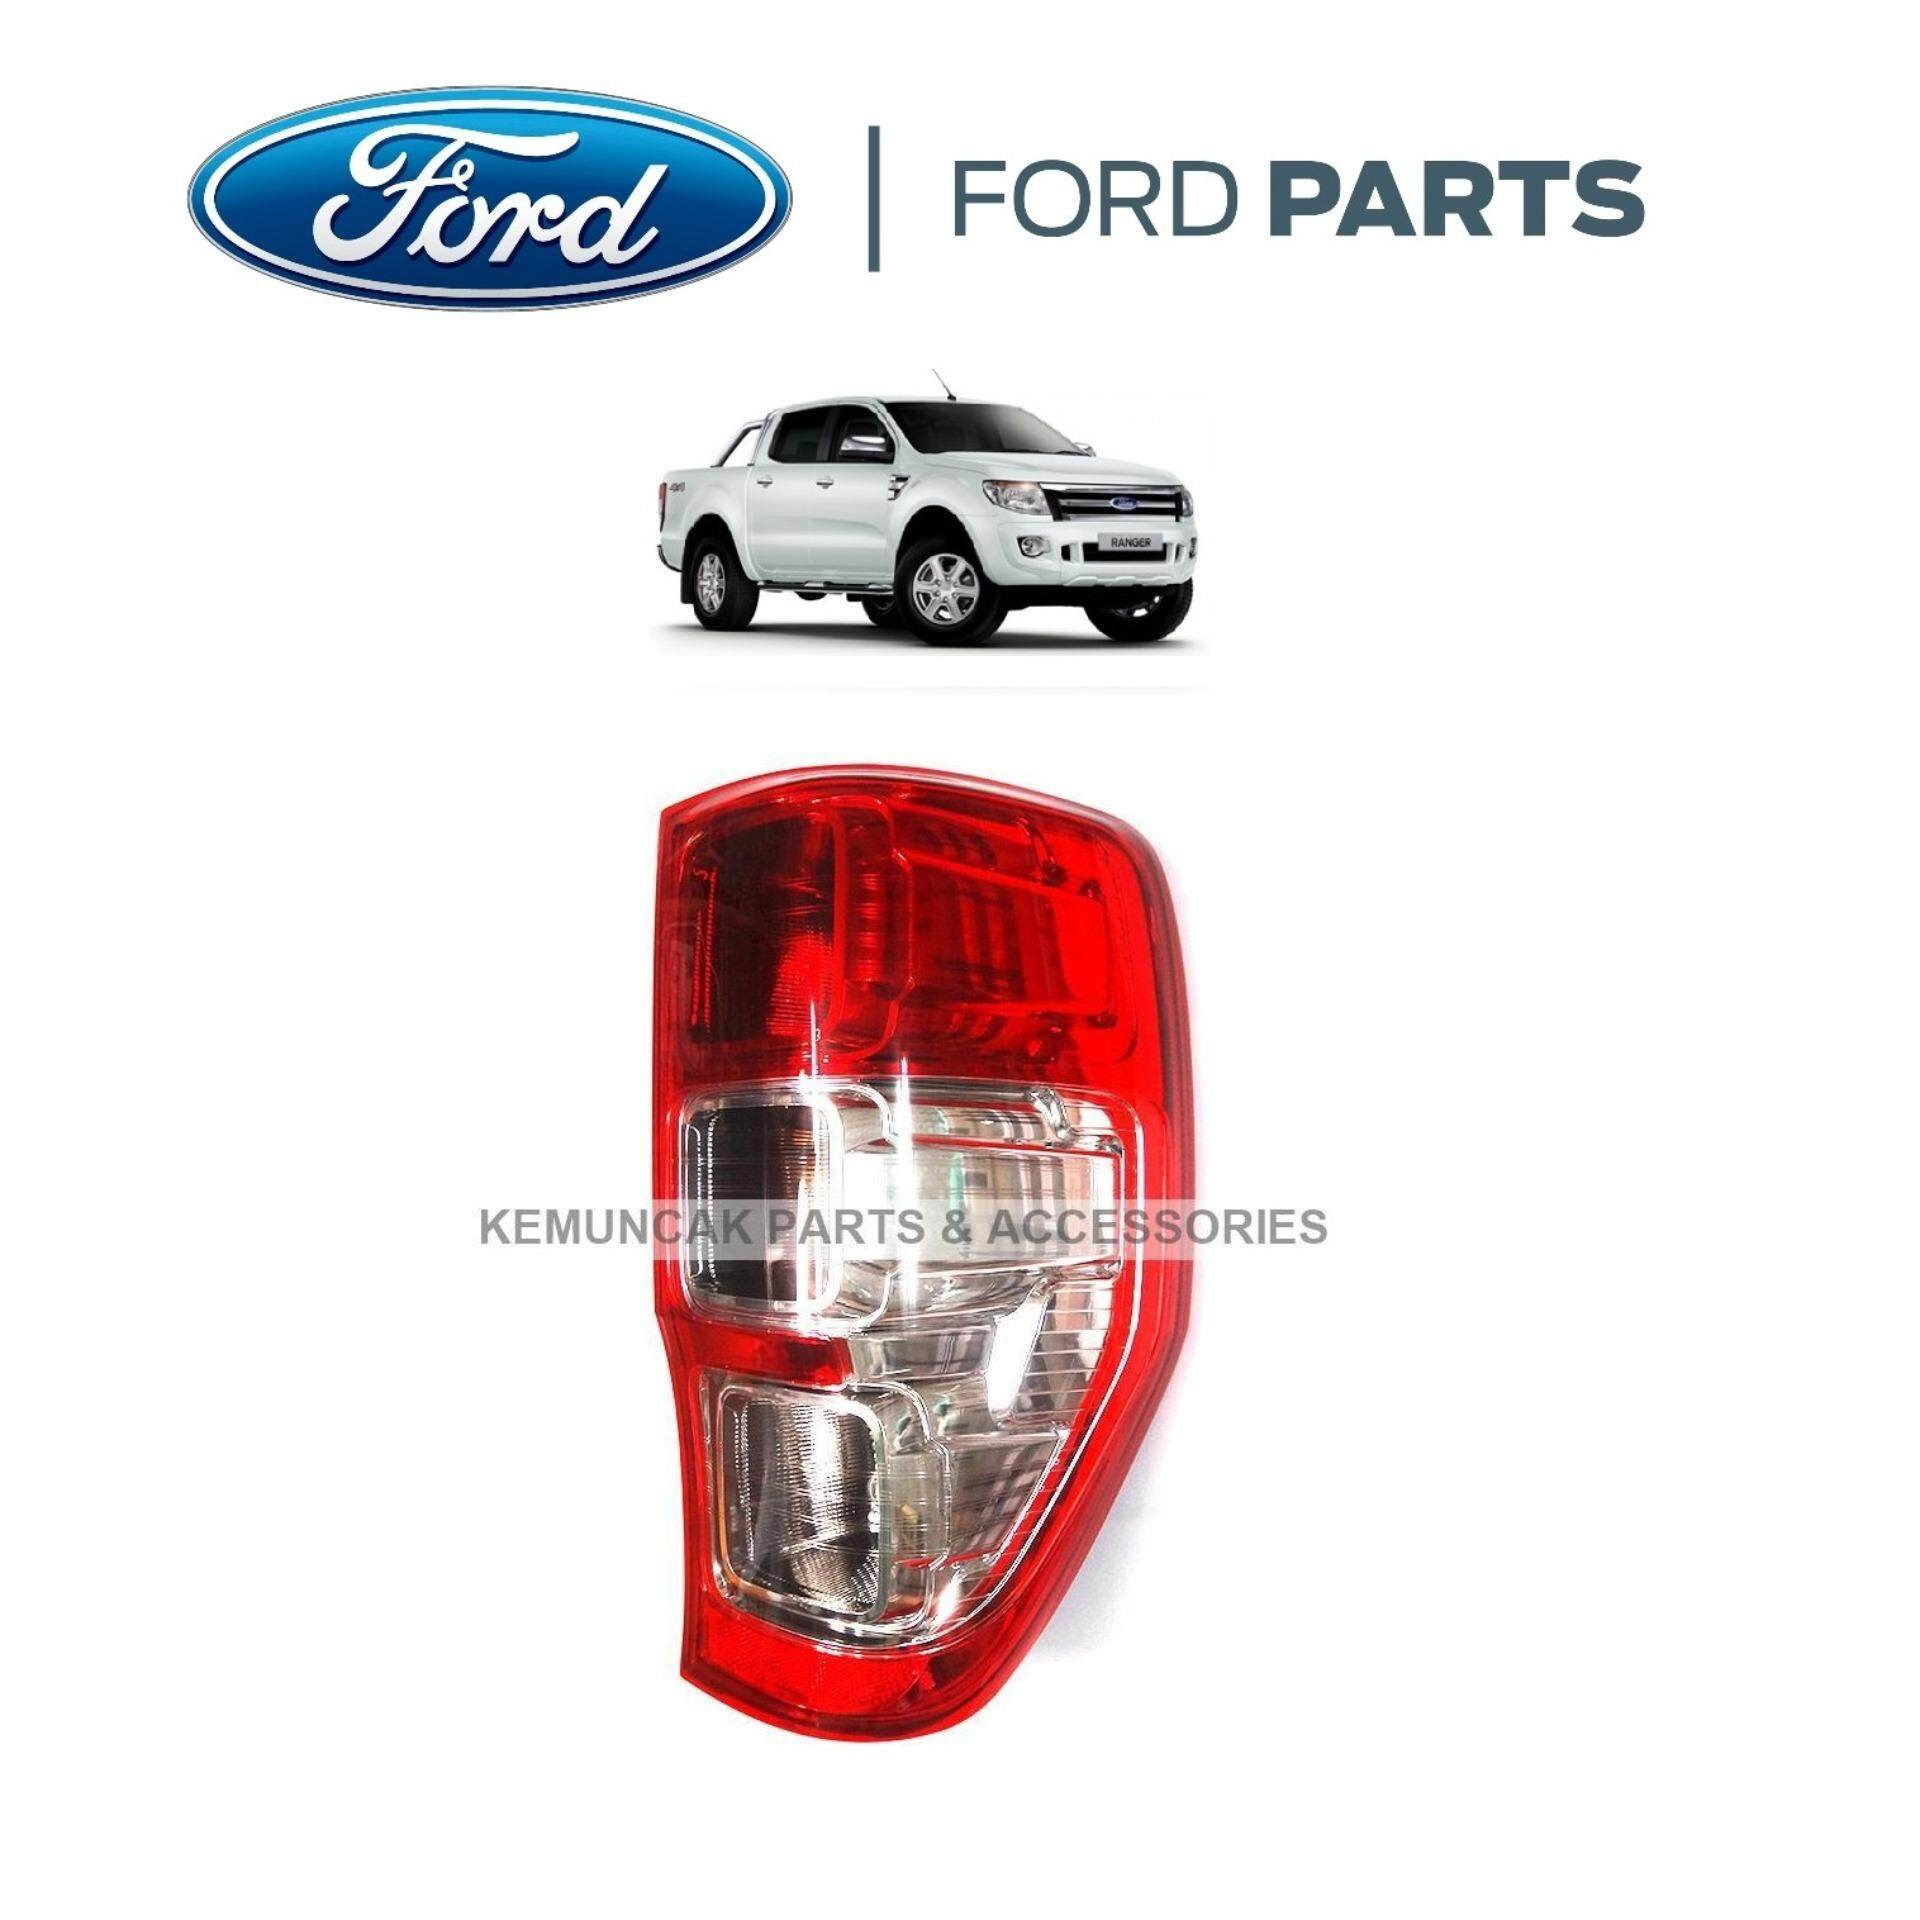 Ford Auto Parts Spares Price In Malaysia Best 2012 Fiesta Fuel Filter Genuine Ranger 22 32 T6 Tdci Tail Lamp